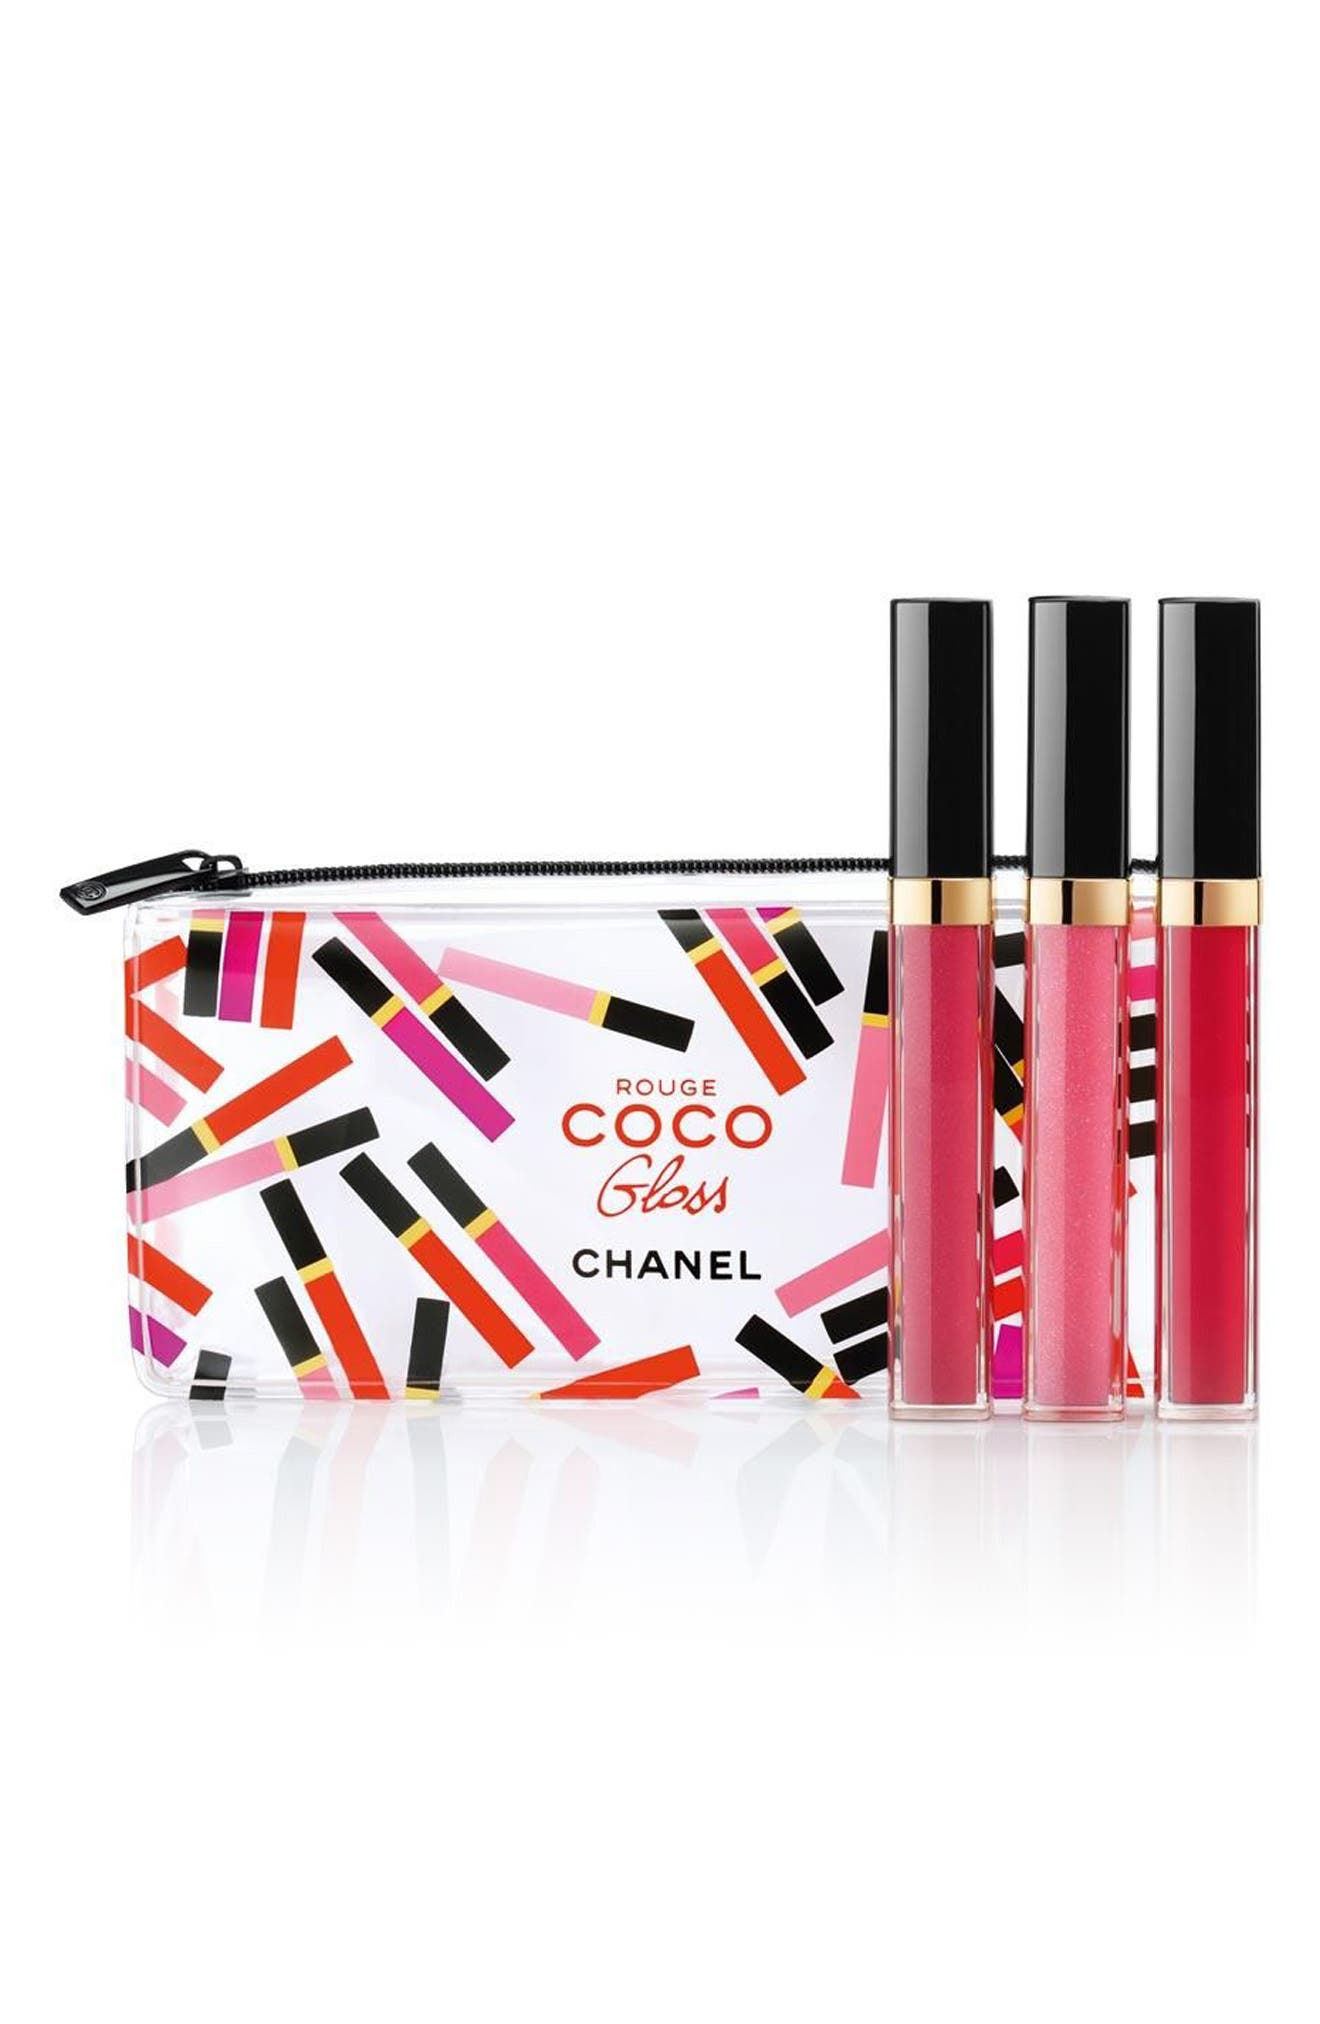 CHANEL BRIGHT ON BRIGHTS ROUGE COCO GLOSS 